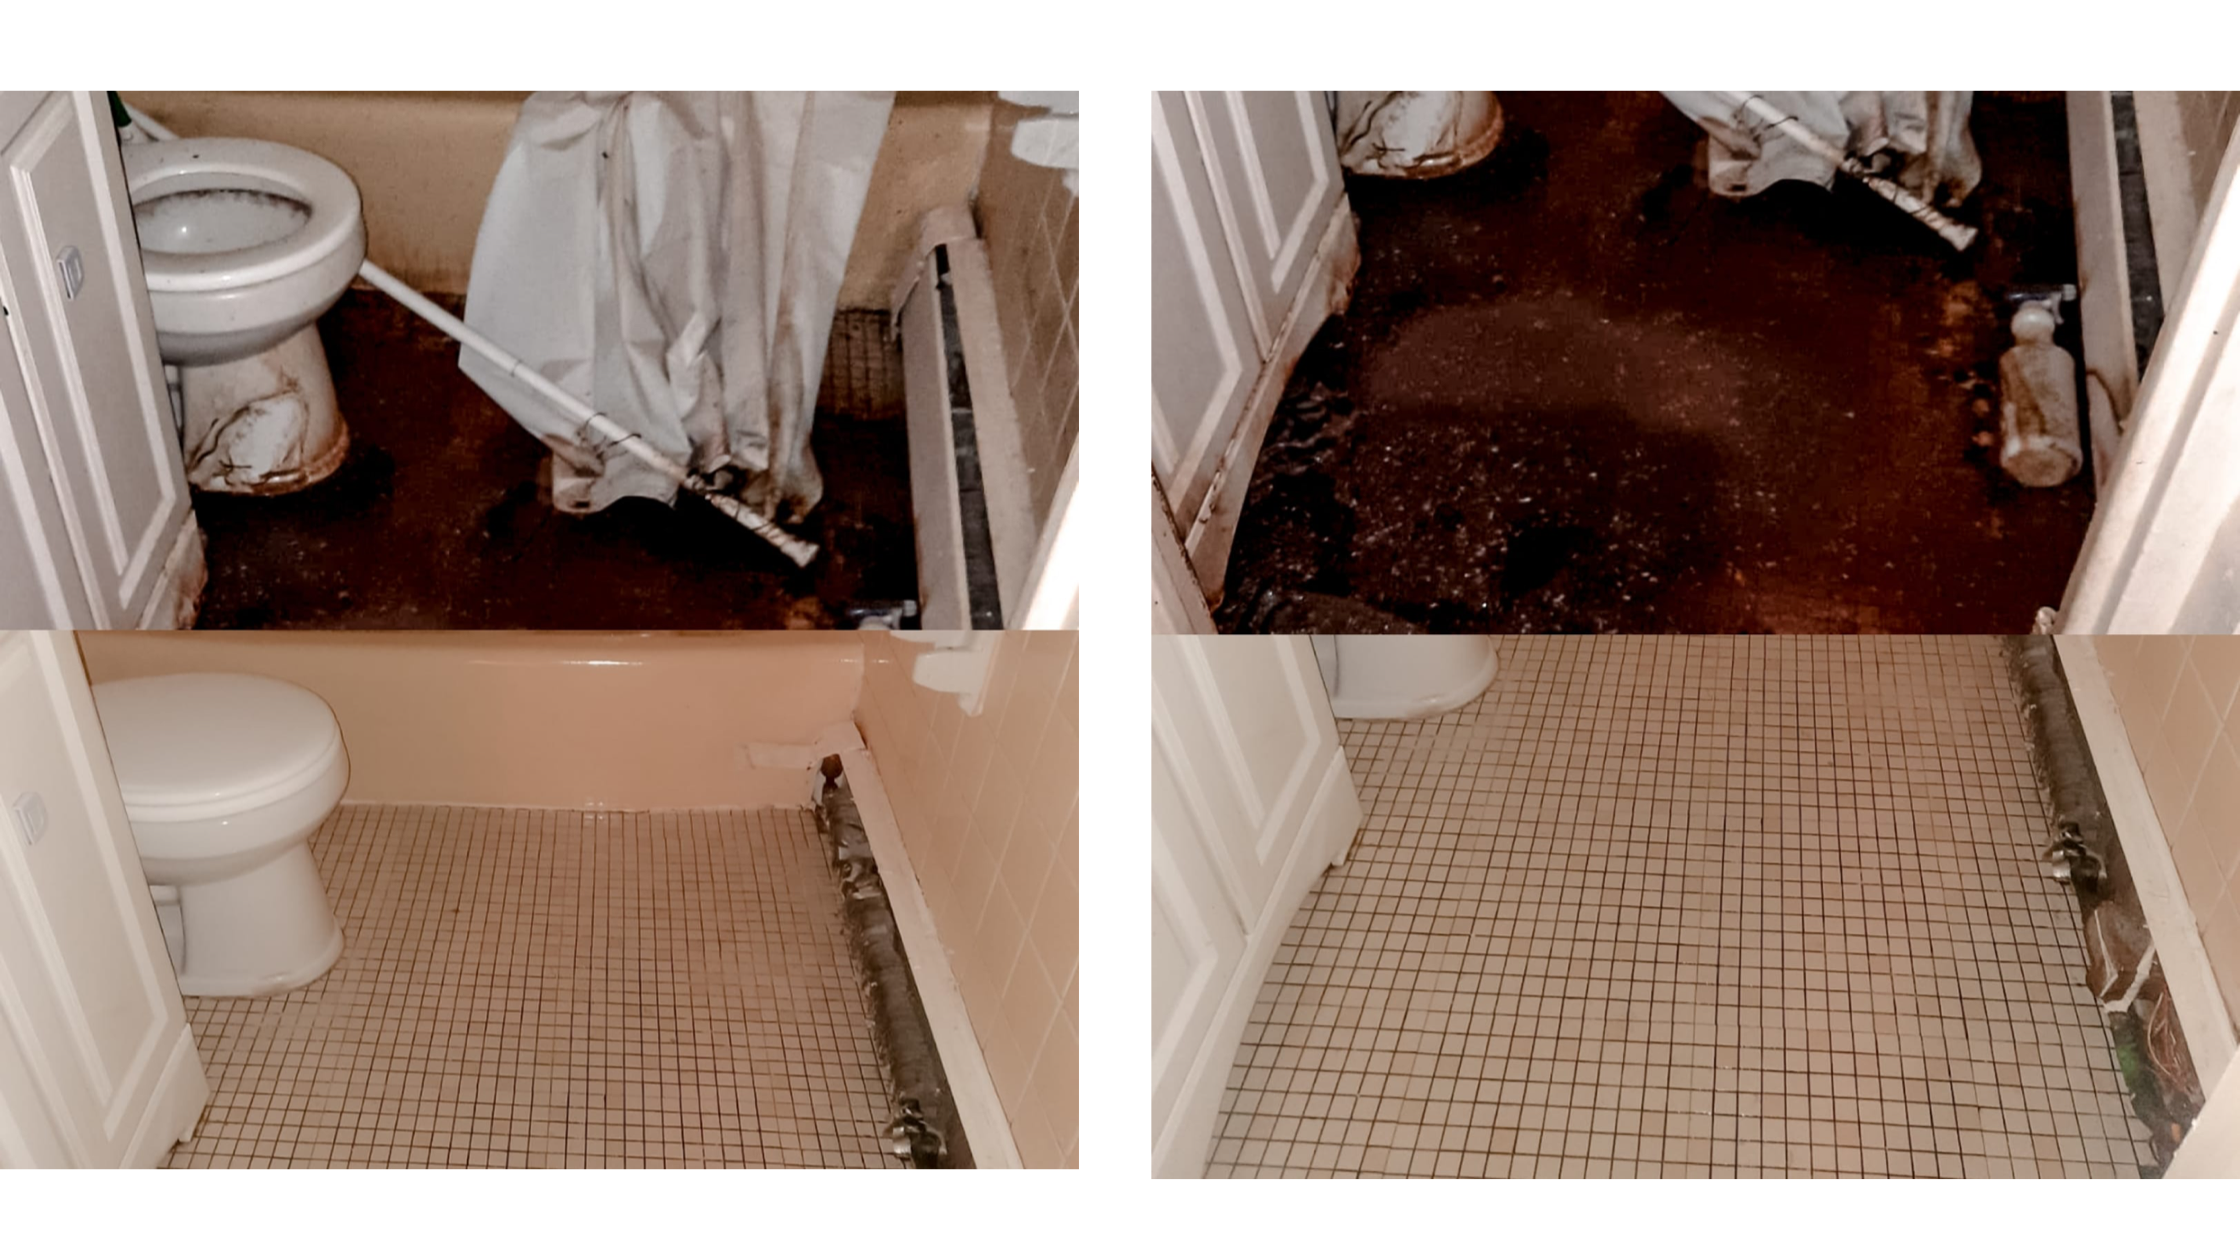 Sewage Backup Cleaning Services: Why You Should Not Go It Alone